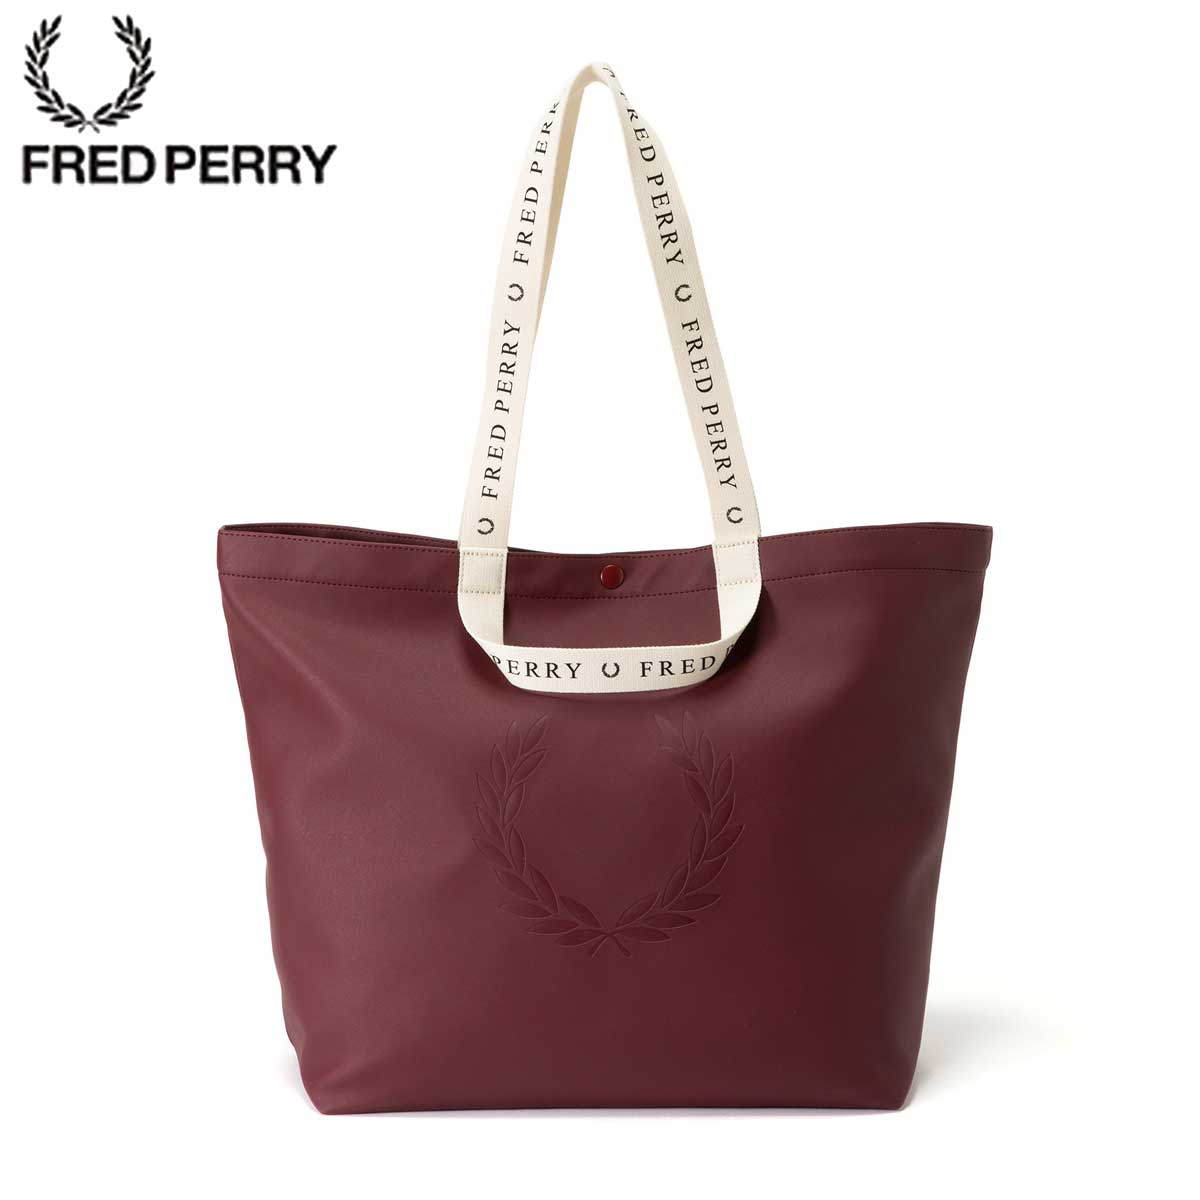 FRED PERRY フレッドペリー Logo Tote Bag F9553 17(MAROON)